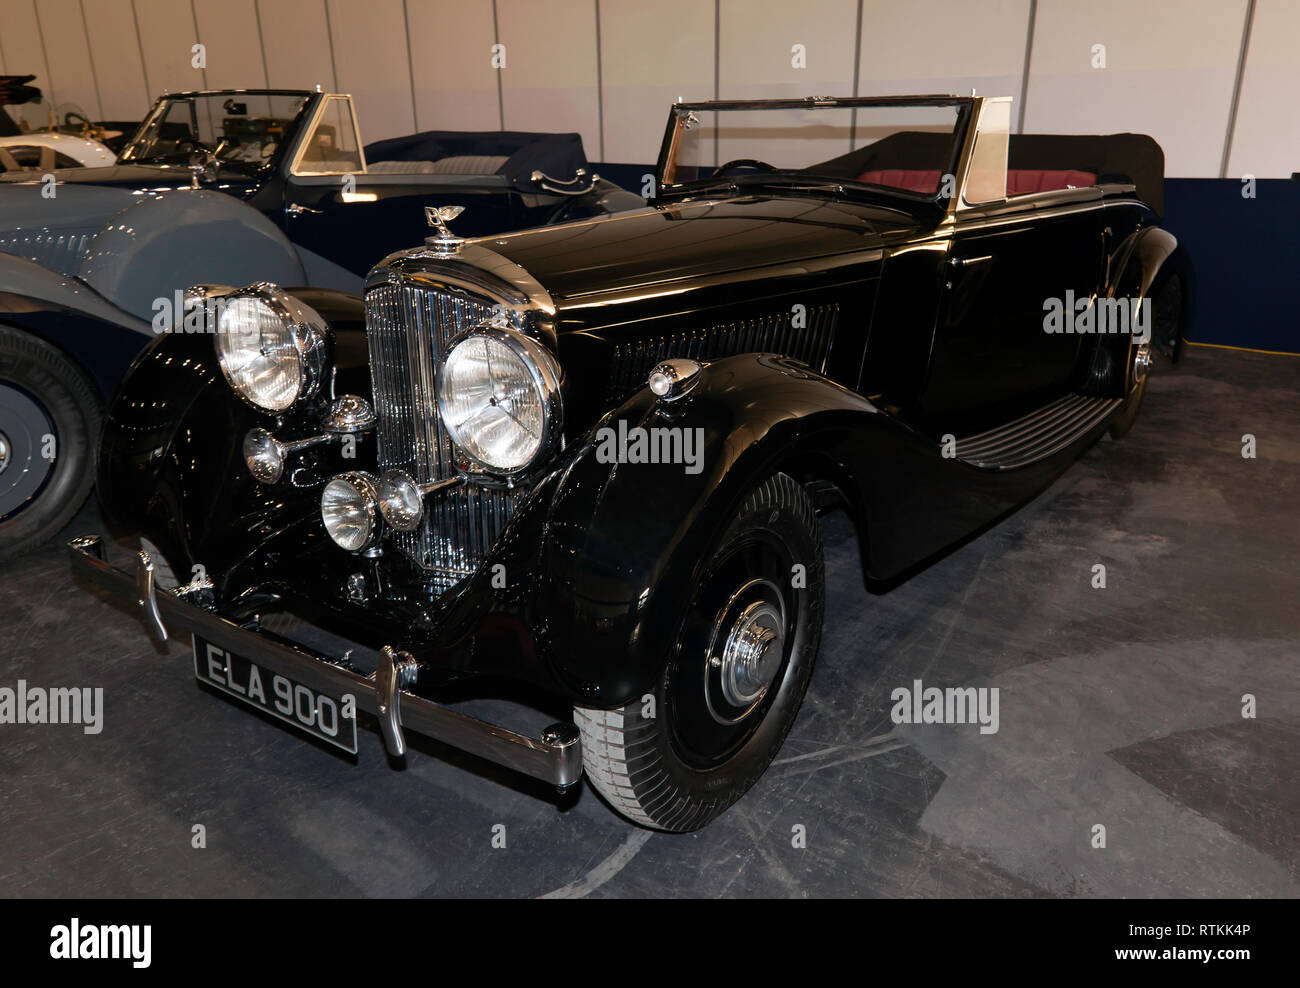 Three-quarters Front-view of a Black,1937 Bentley 4.5L 2-Door Drophead Coupe on display in the Paddock Area of the 2019 London Classic Car Show - Stock Image